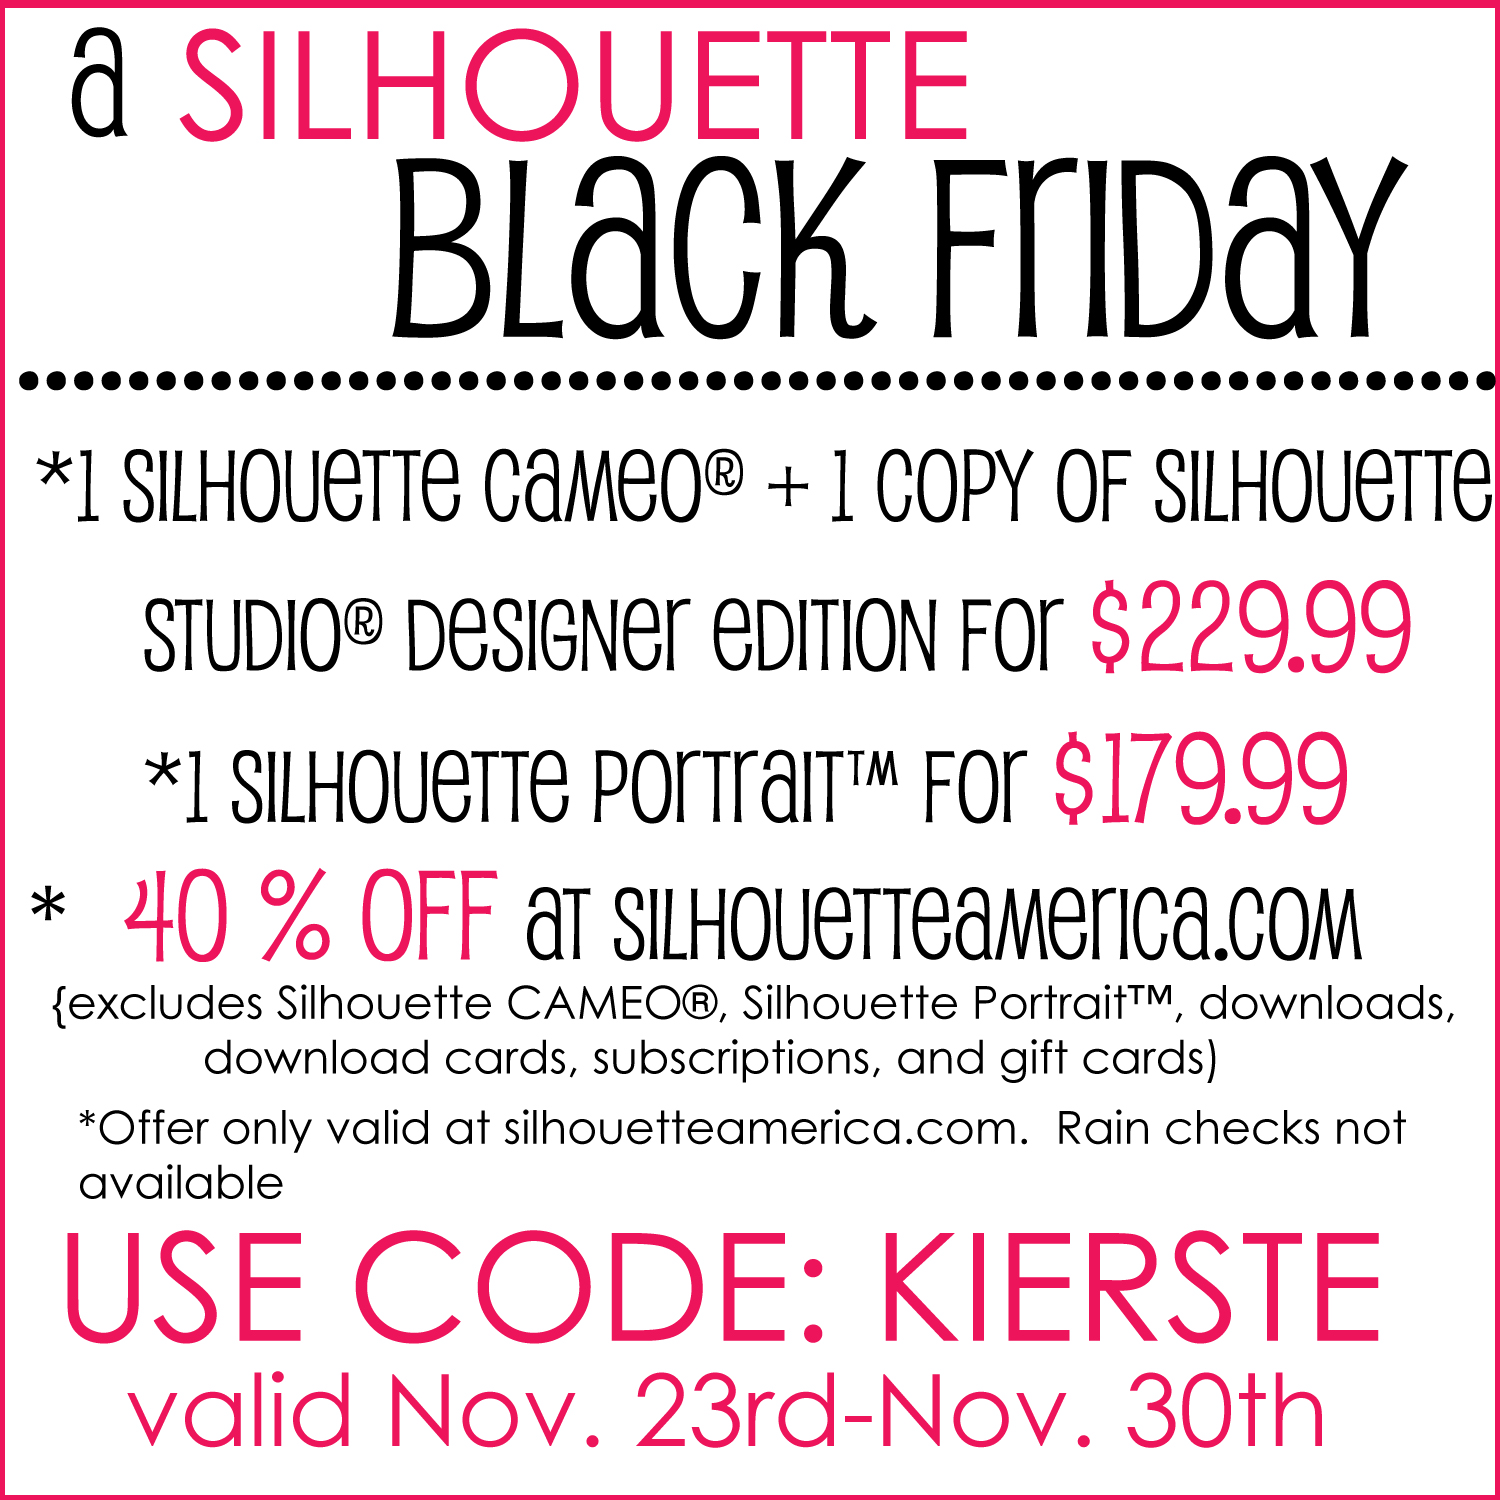 Black Friday 2012 Silhouette 2